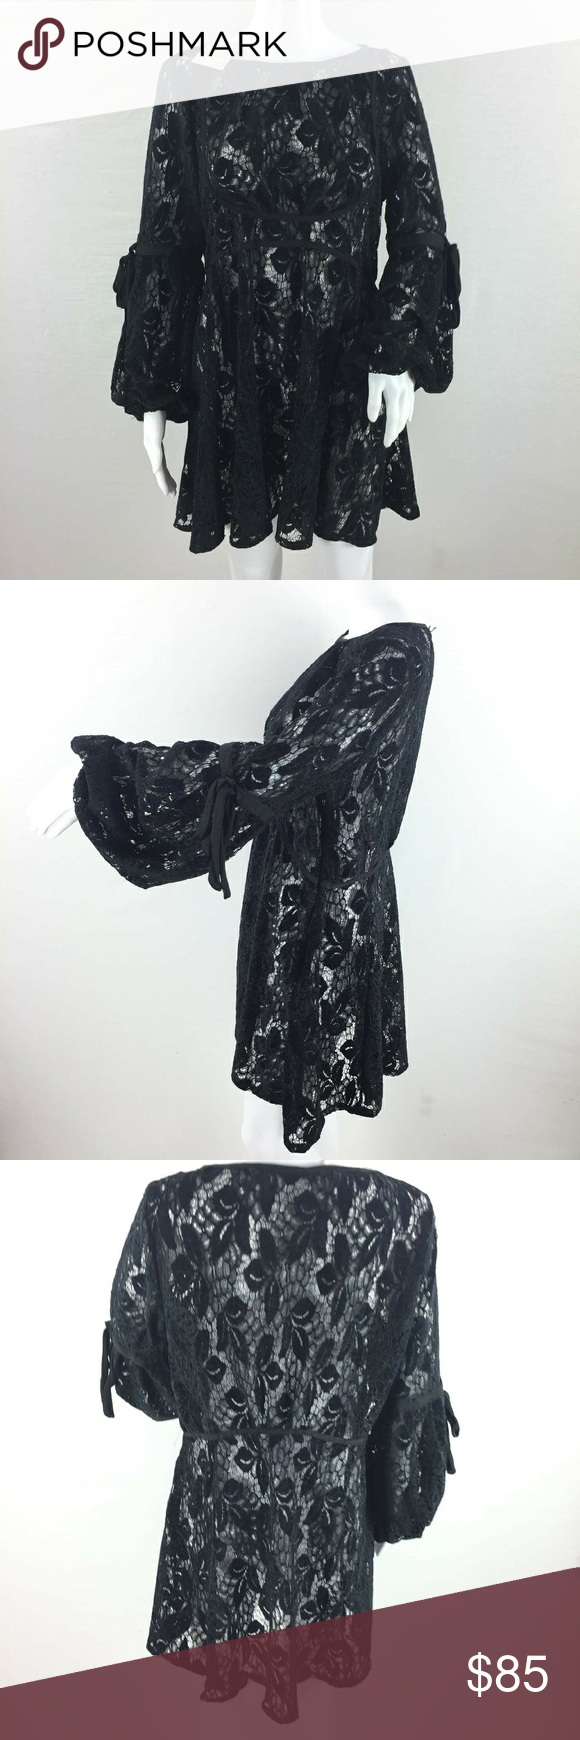 5079df09abb0 Free people ruby lace tunic dress size small black Brand new with tags. Free  people Ruby all lace tunic dress Womens size small black floral puff sleeve  ...